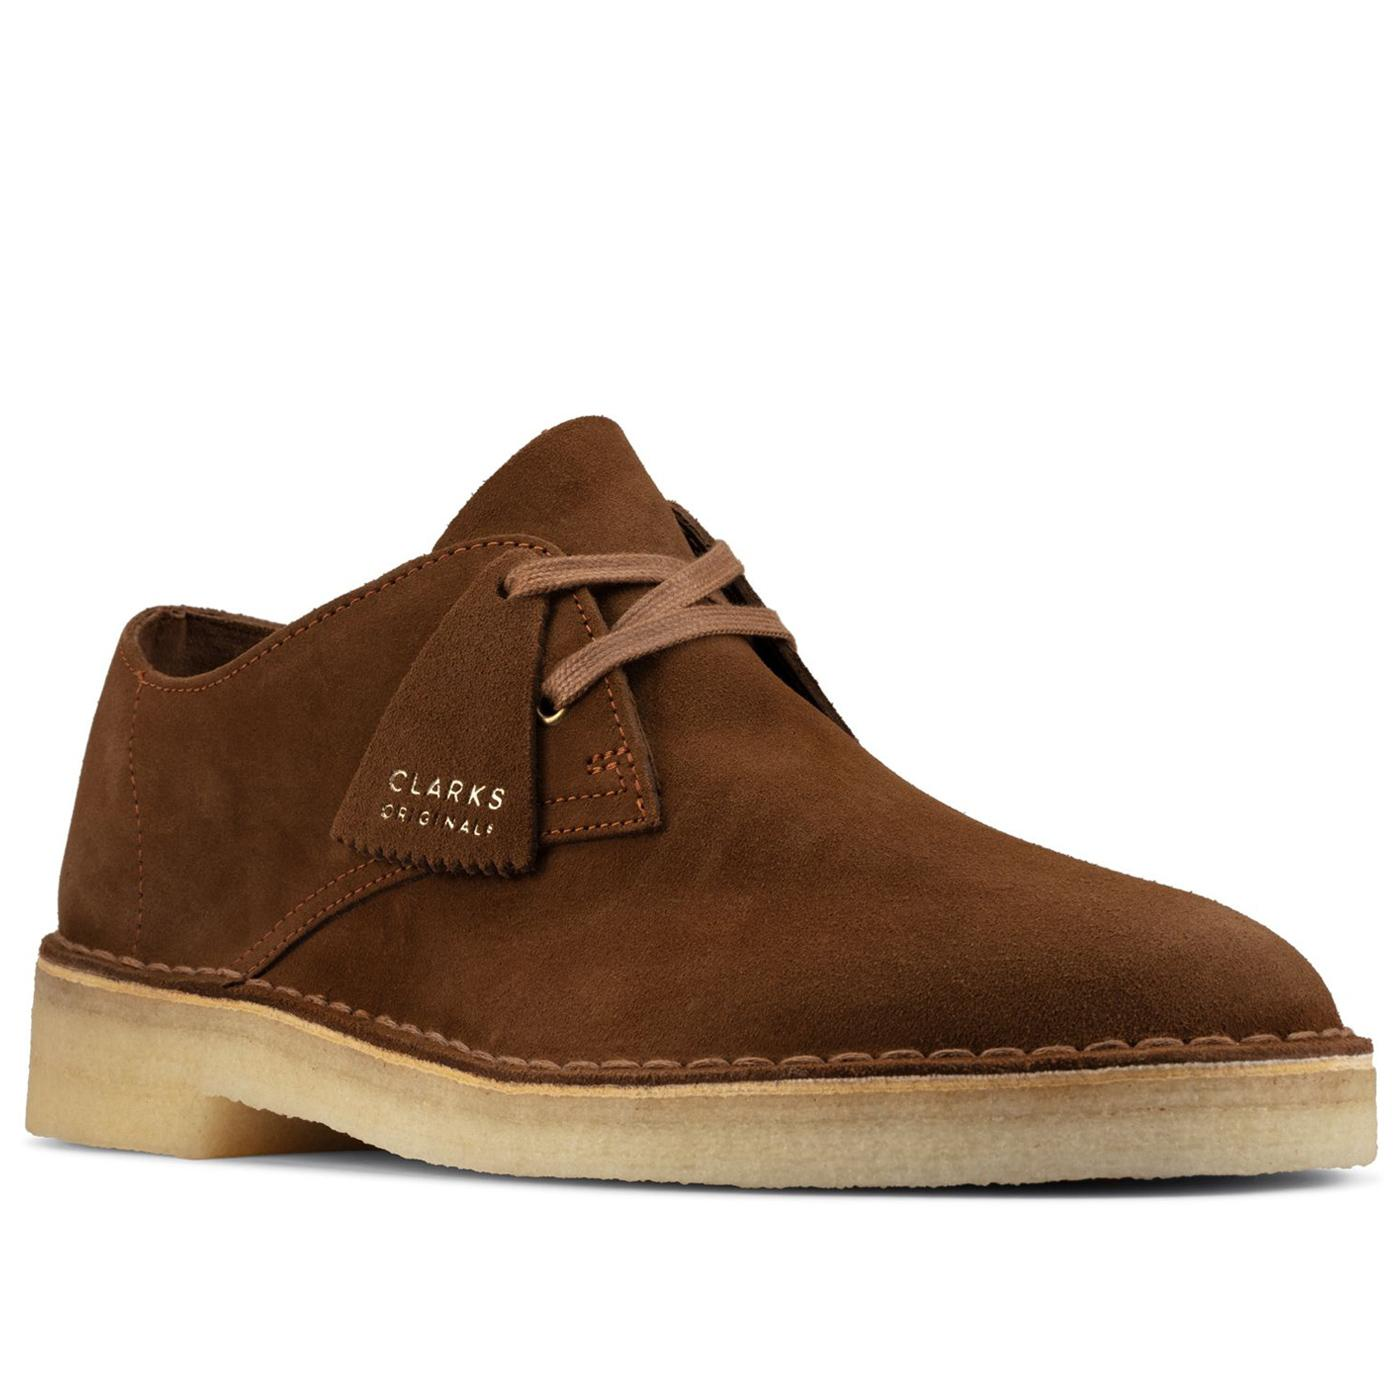 Desert Khan CLARKS ORIGINALS Suede Oxford Shoes C